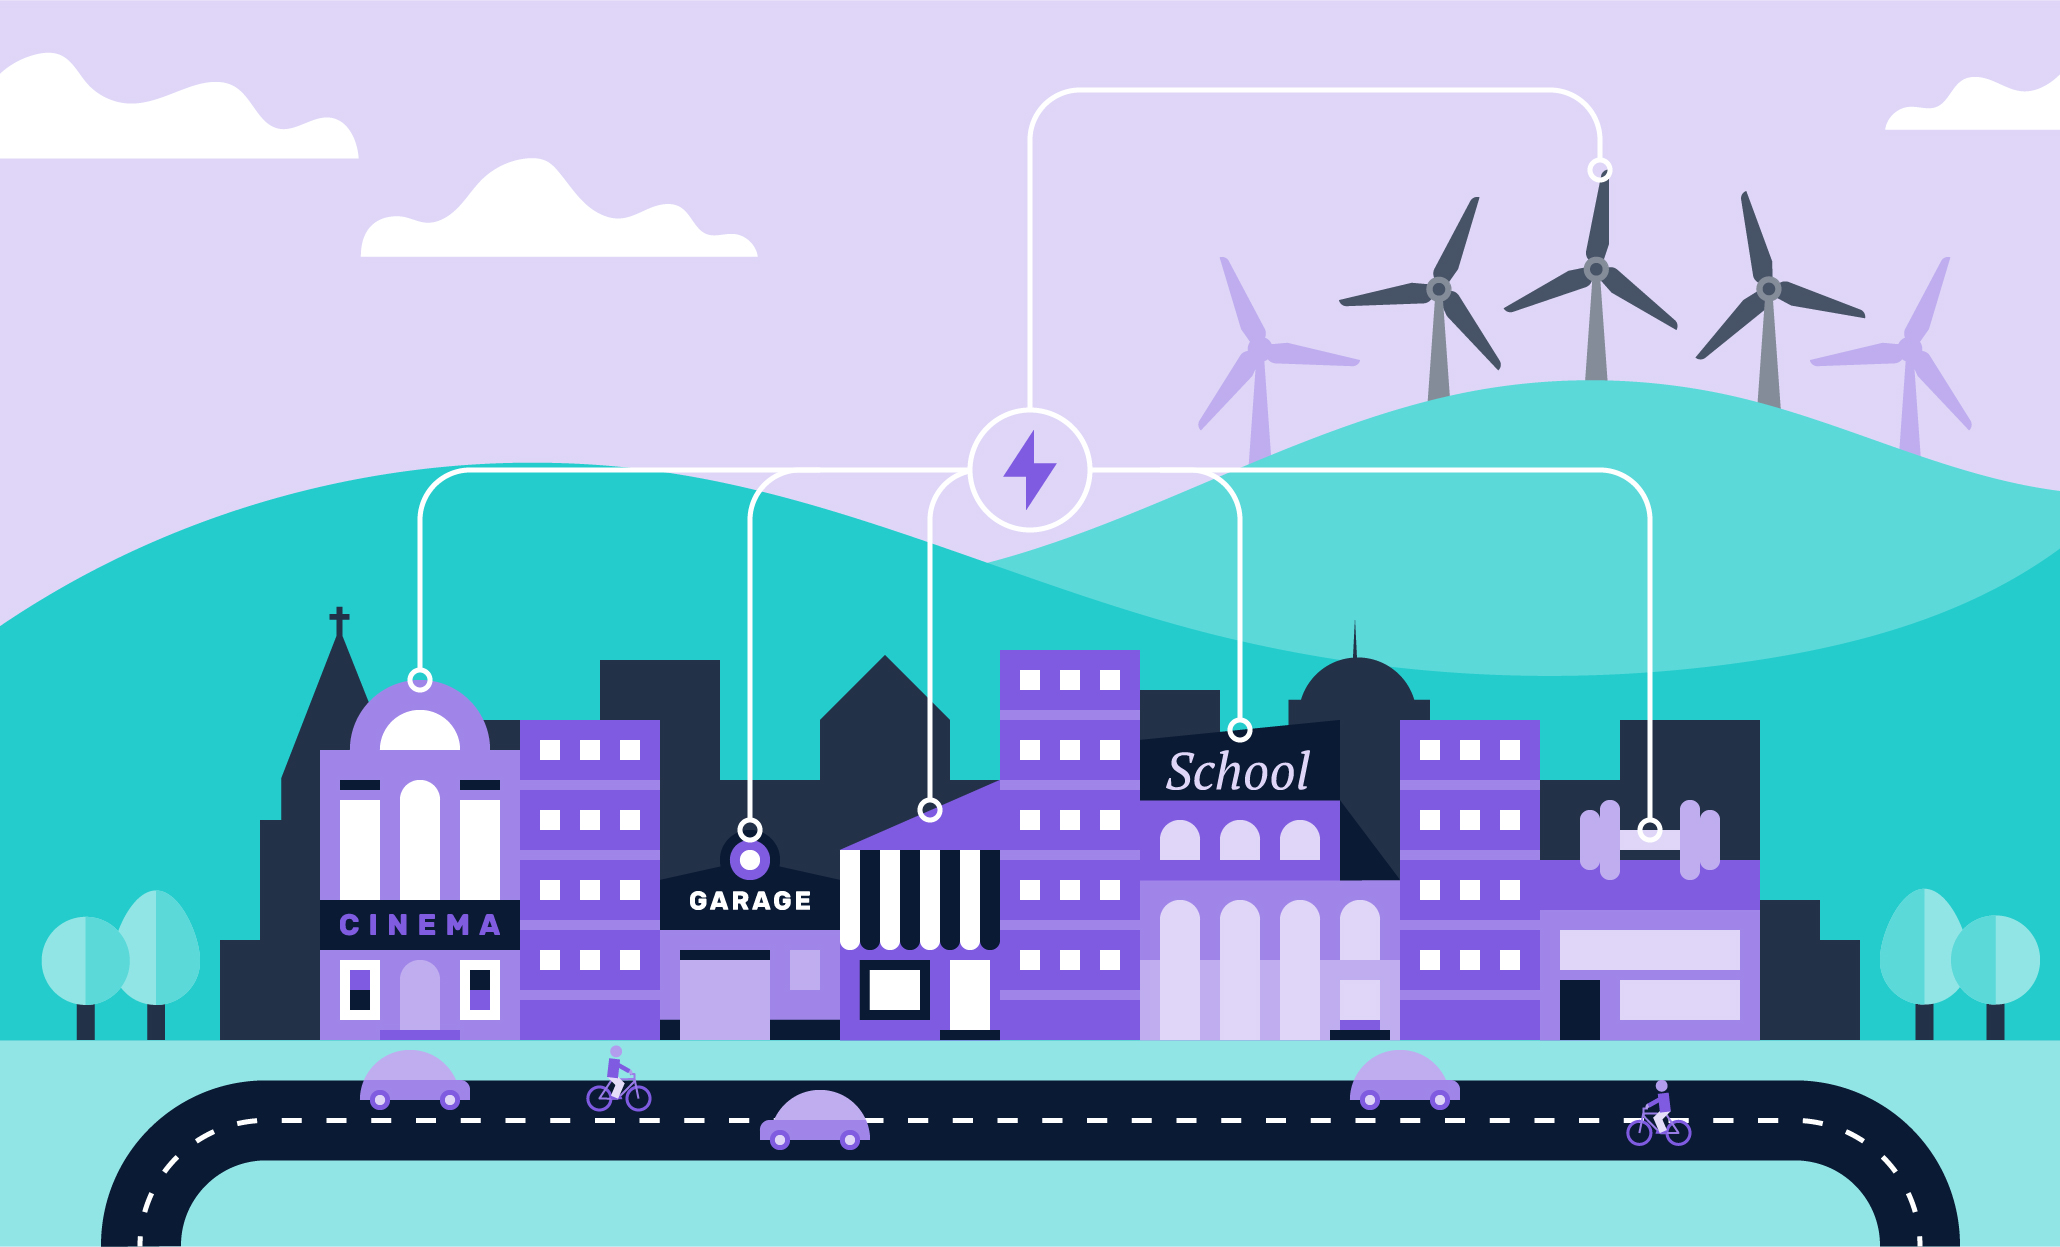 <p>High street illustration with a wind farm in the background providing power to local shops</p>